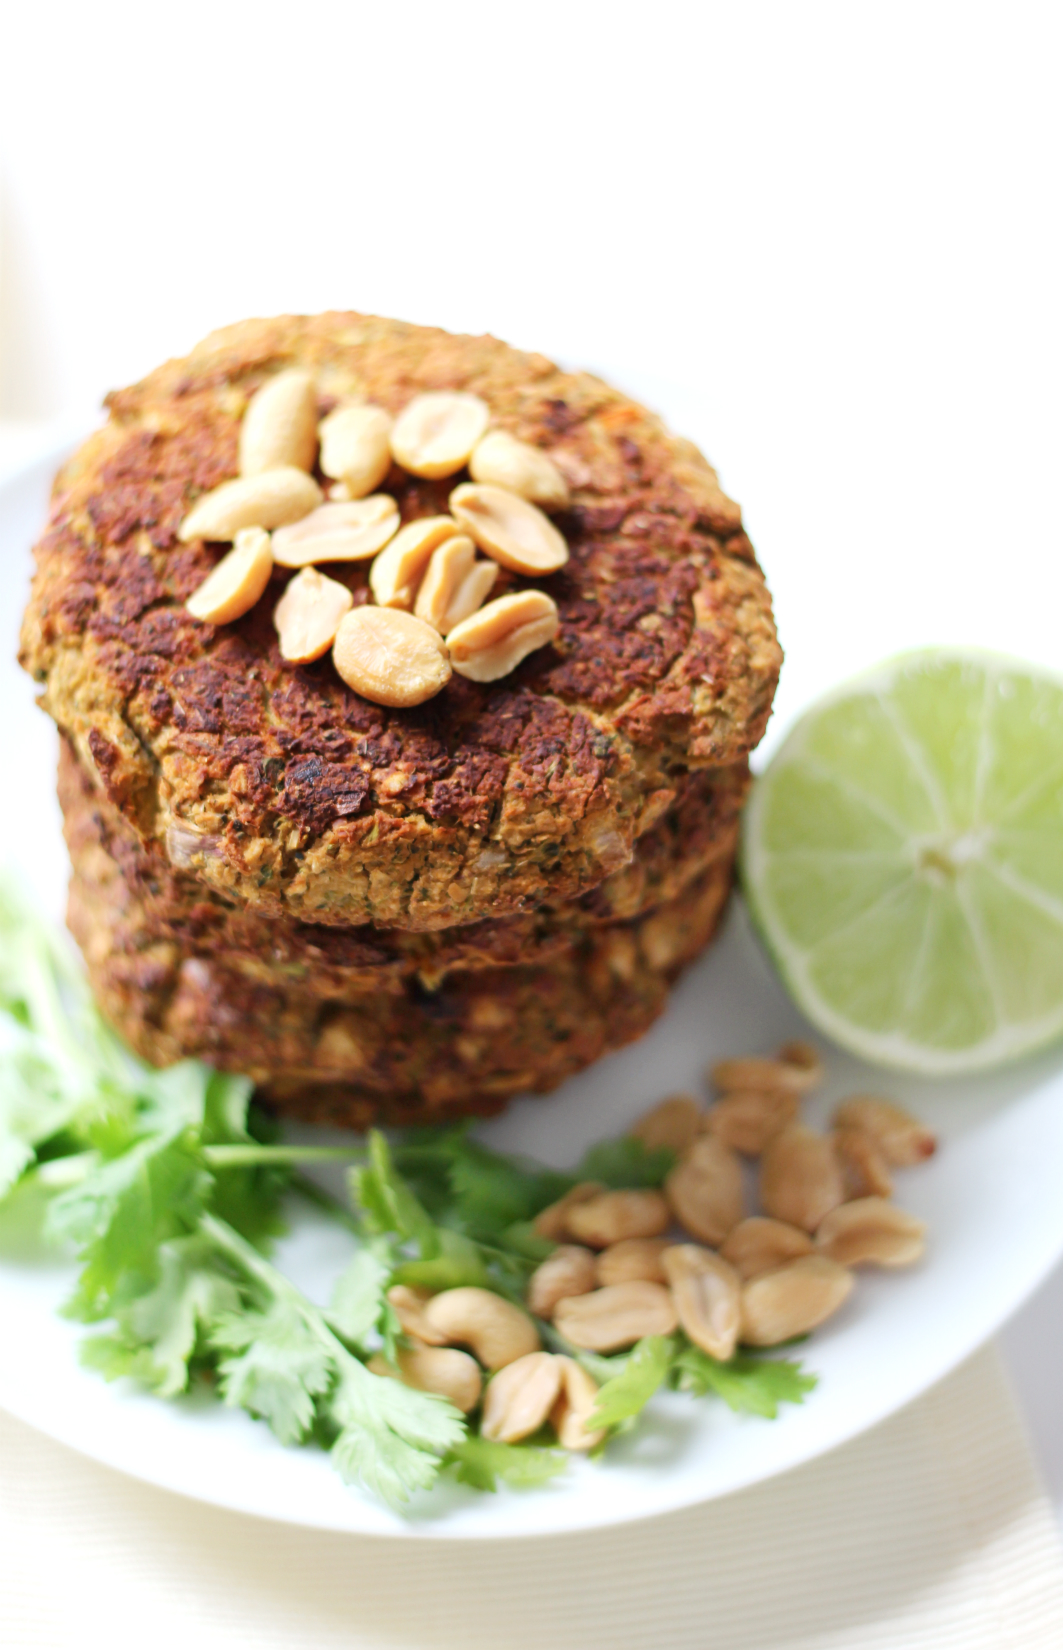 Pad Thai Broccoli Burgers | Strength and Sunshine @RebeccaGF666 The flavors of Pad Thai packed into the ultimate bean and broccoli burger! Gluten-free, vegan, Pad Thai Broccoli Burgers are a perfect dinner recipe to satisfy even your carnivorous friends!